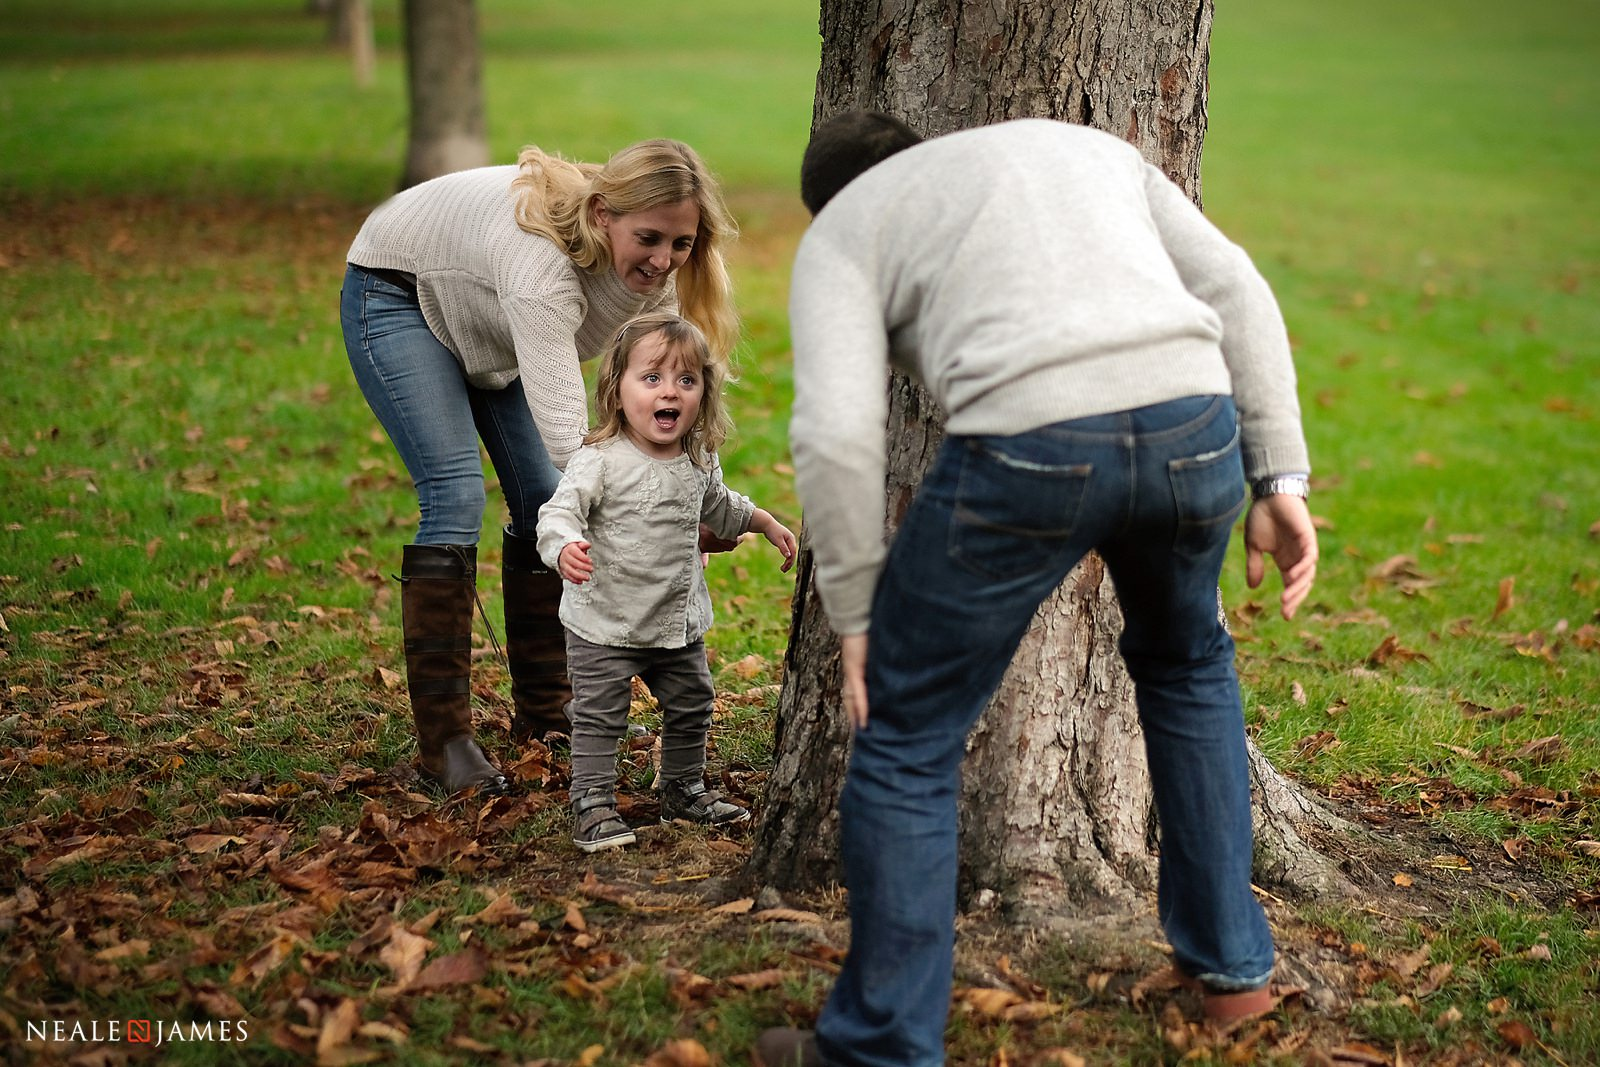 A Dad jumps out from behind a large tree as he plays chase with his daughter in the park